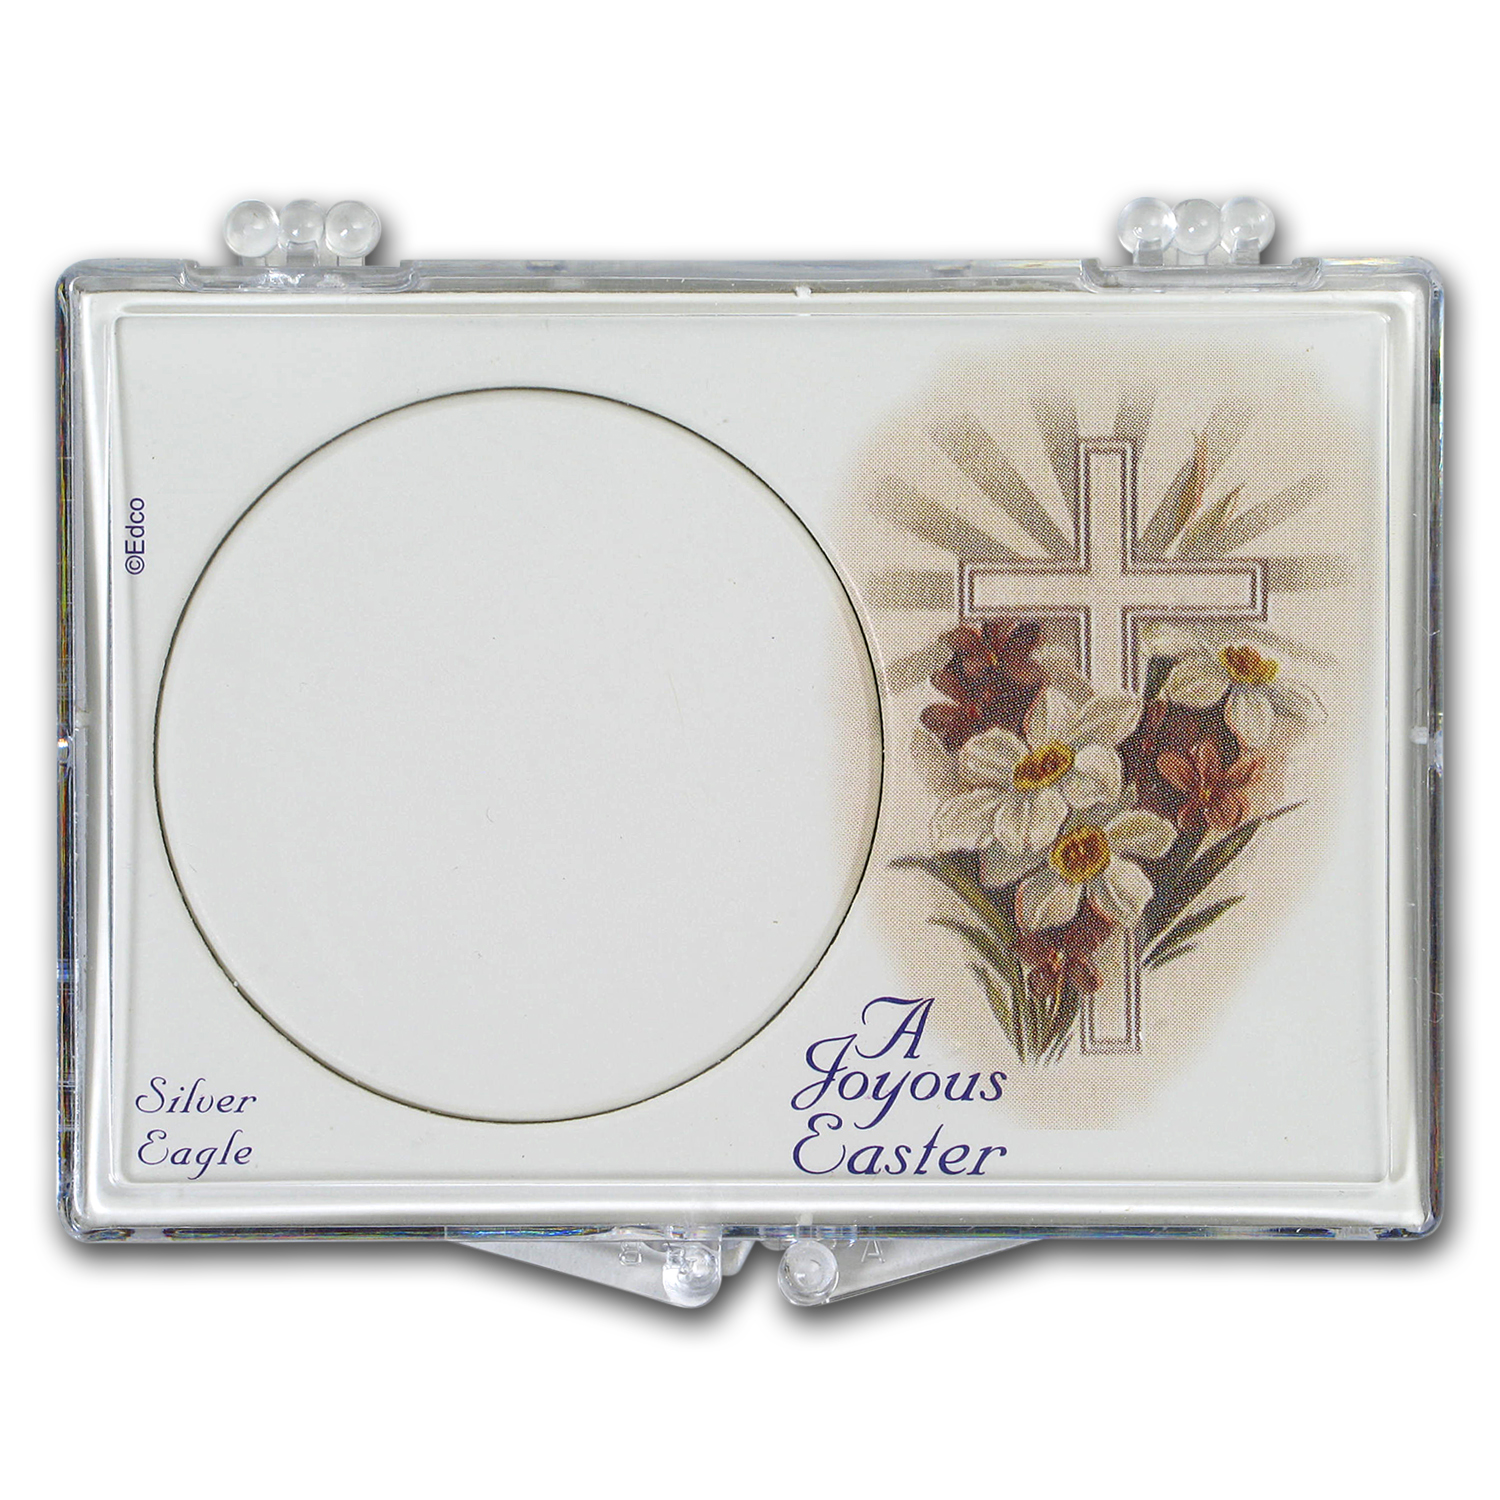 Snap-Lock Holder - Easter Cross (Silver Eagle)